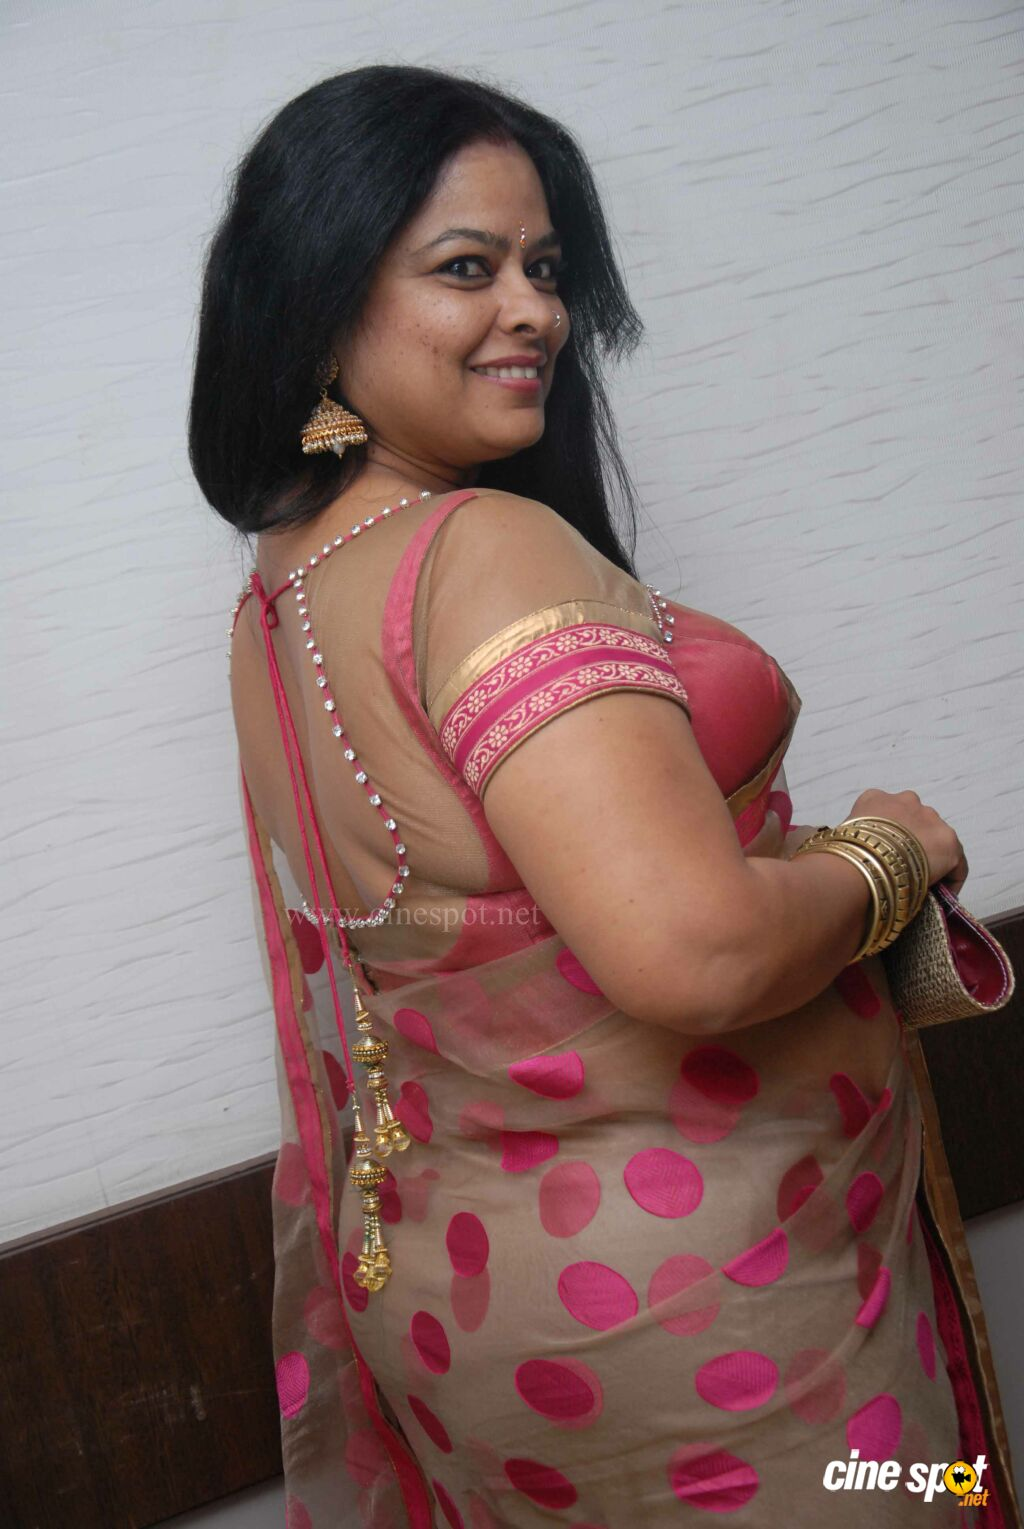 You tell Indian hot aunty images that interfere